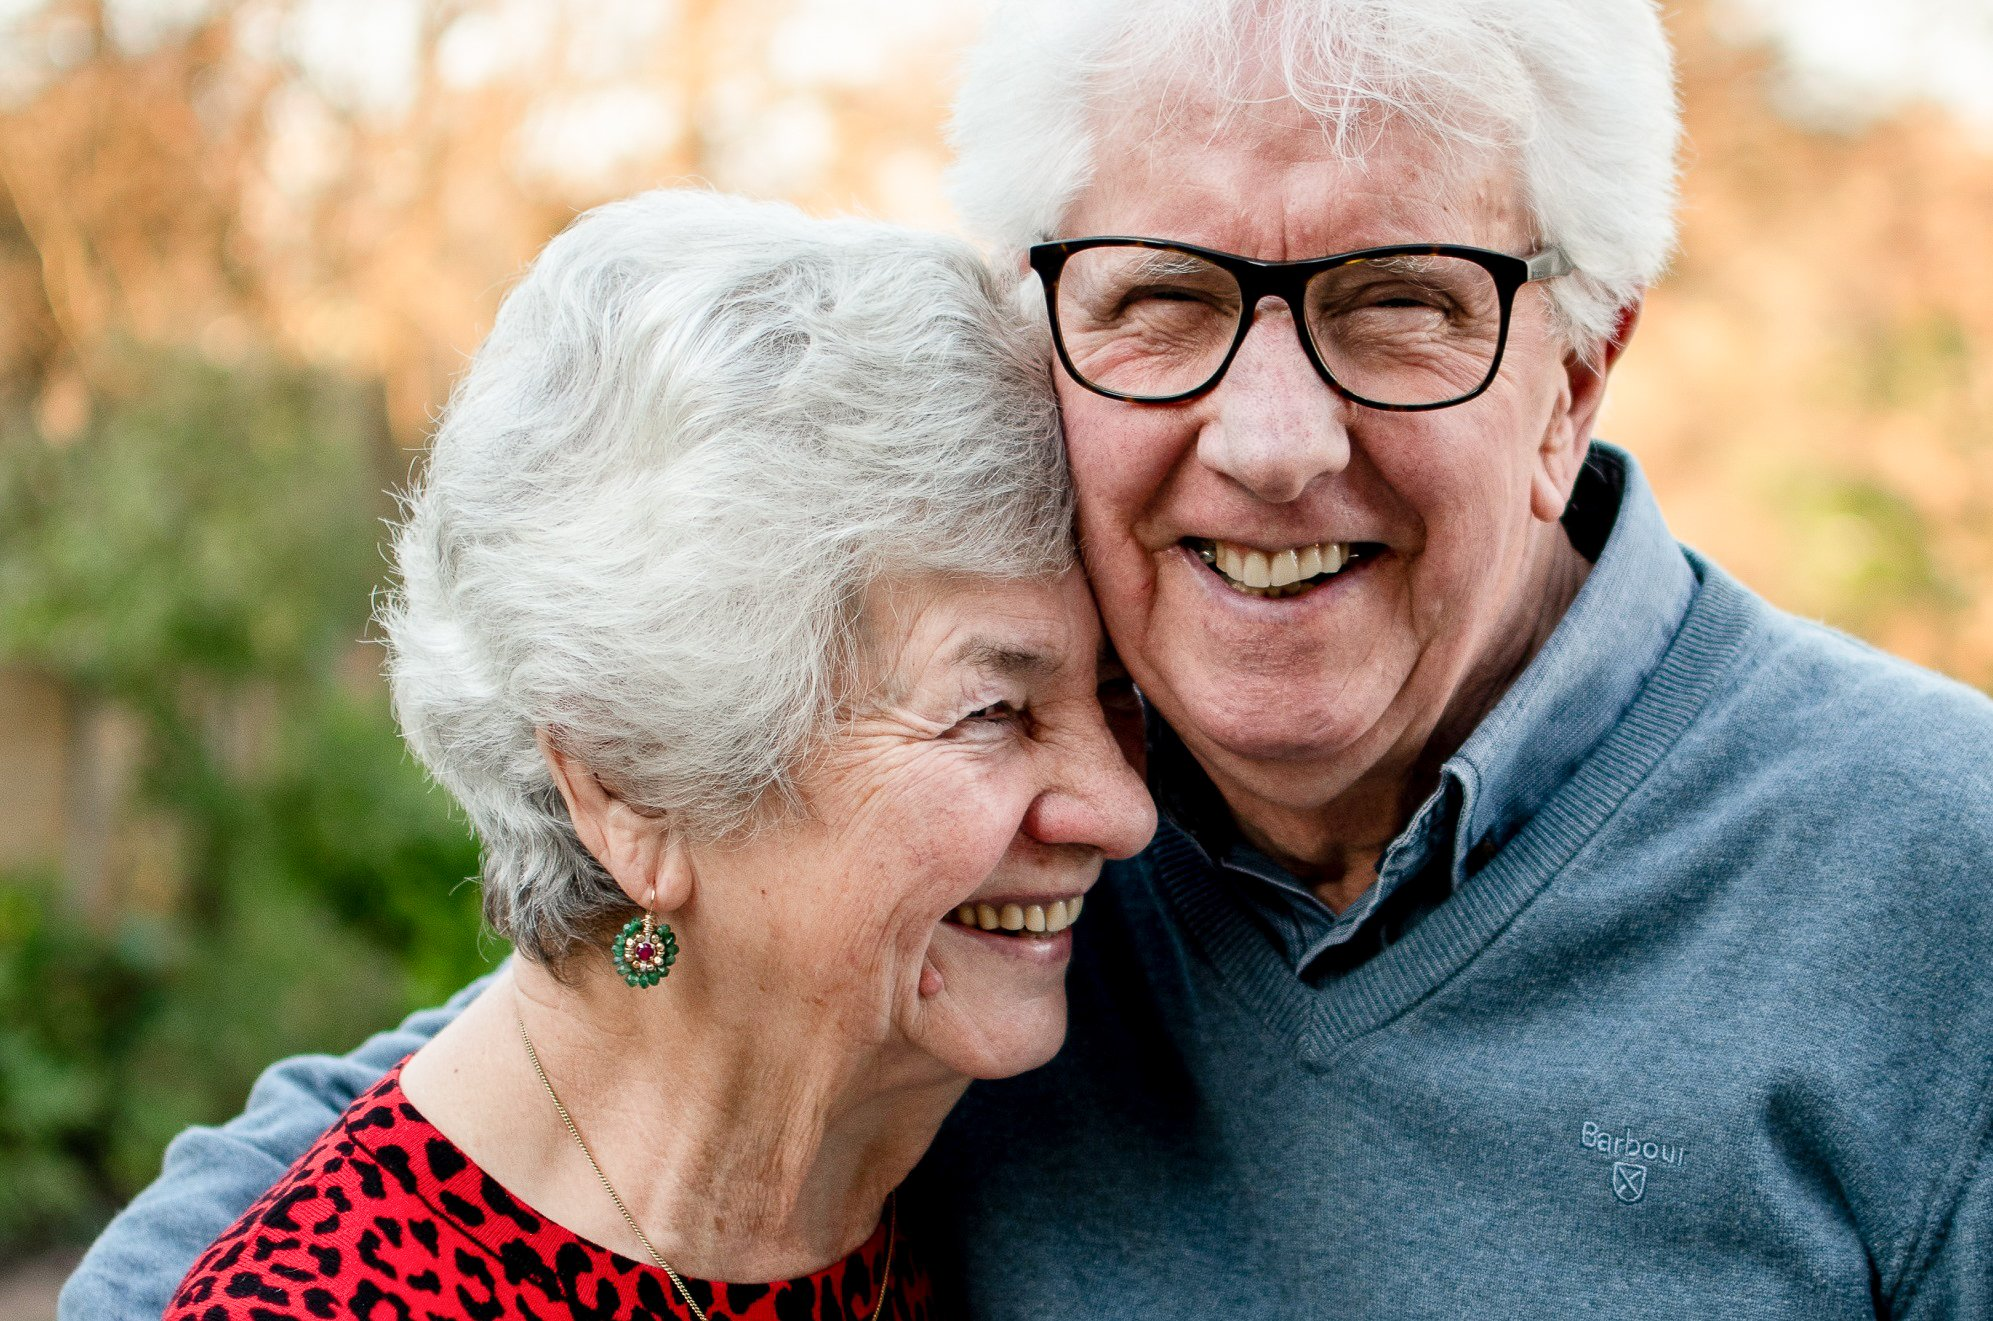 The importance of dental hygiene for older adults